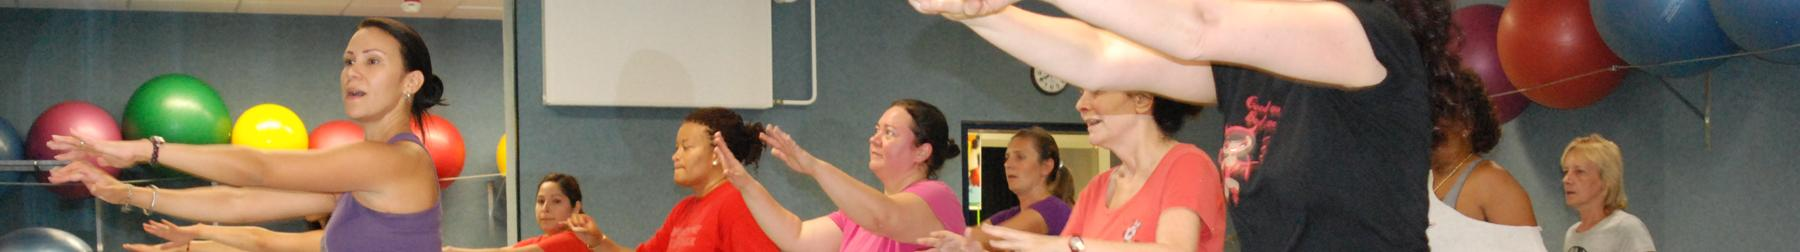 A fitness instructor leads a ca group of women in a zumba routine.